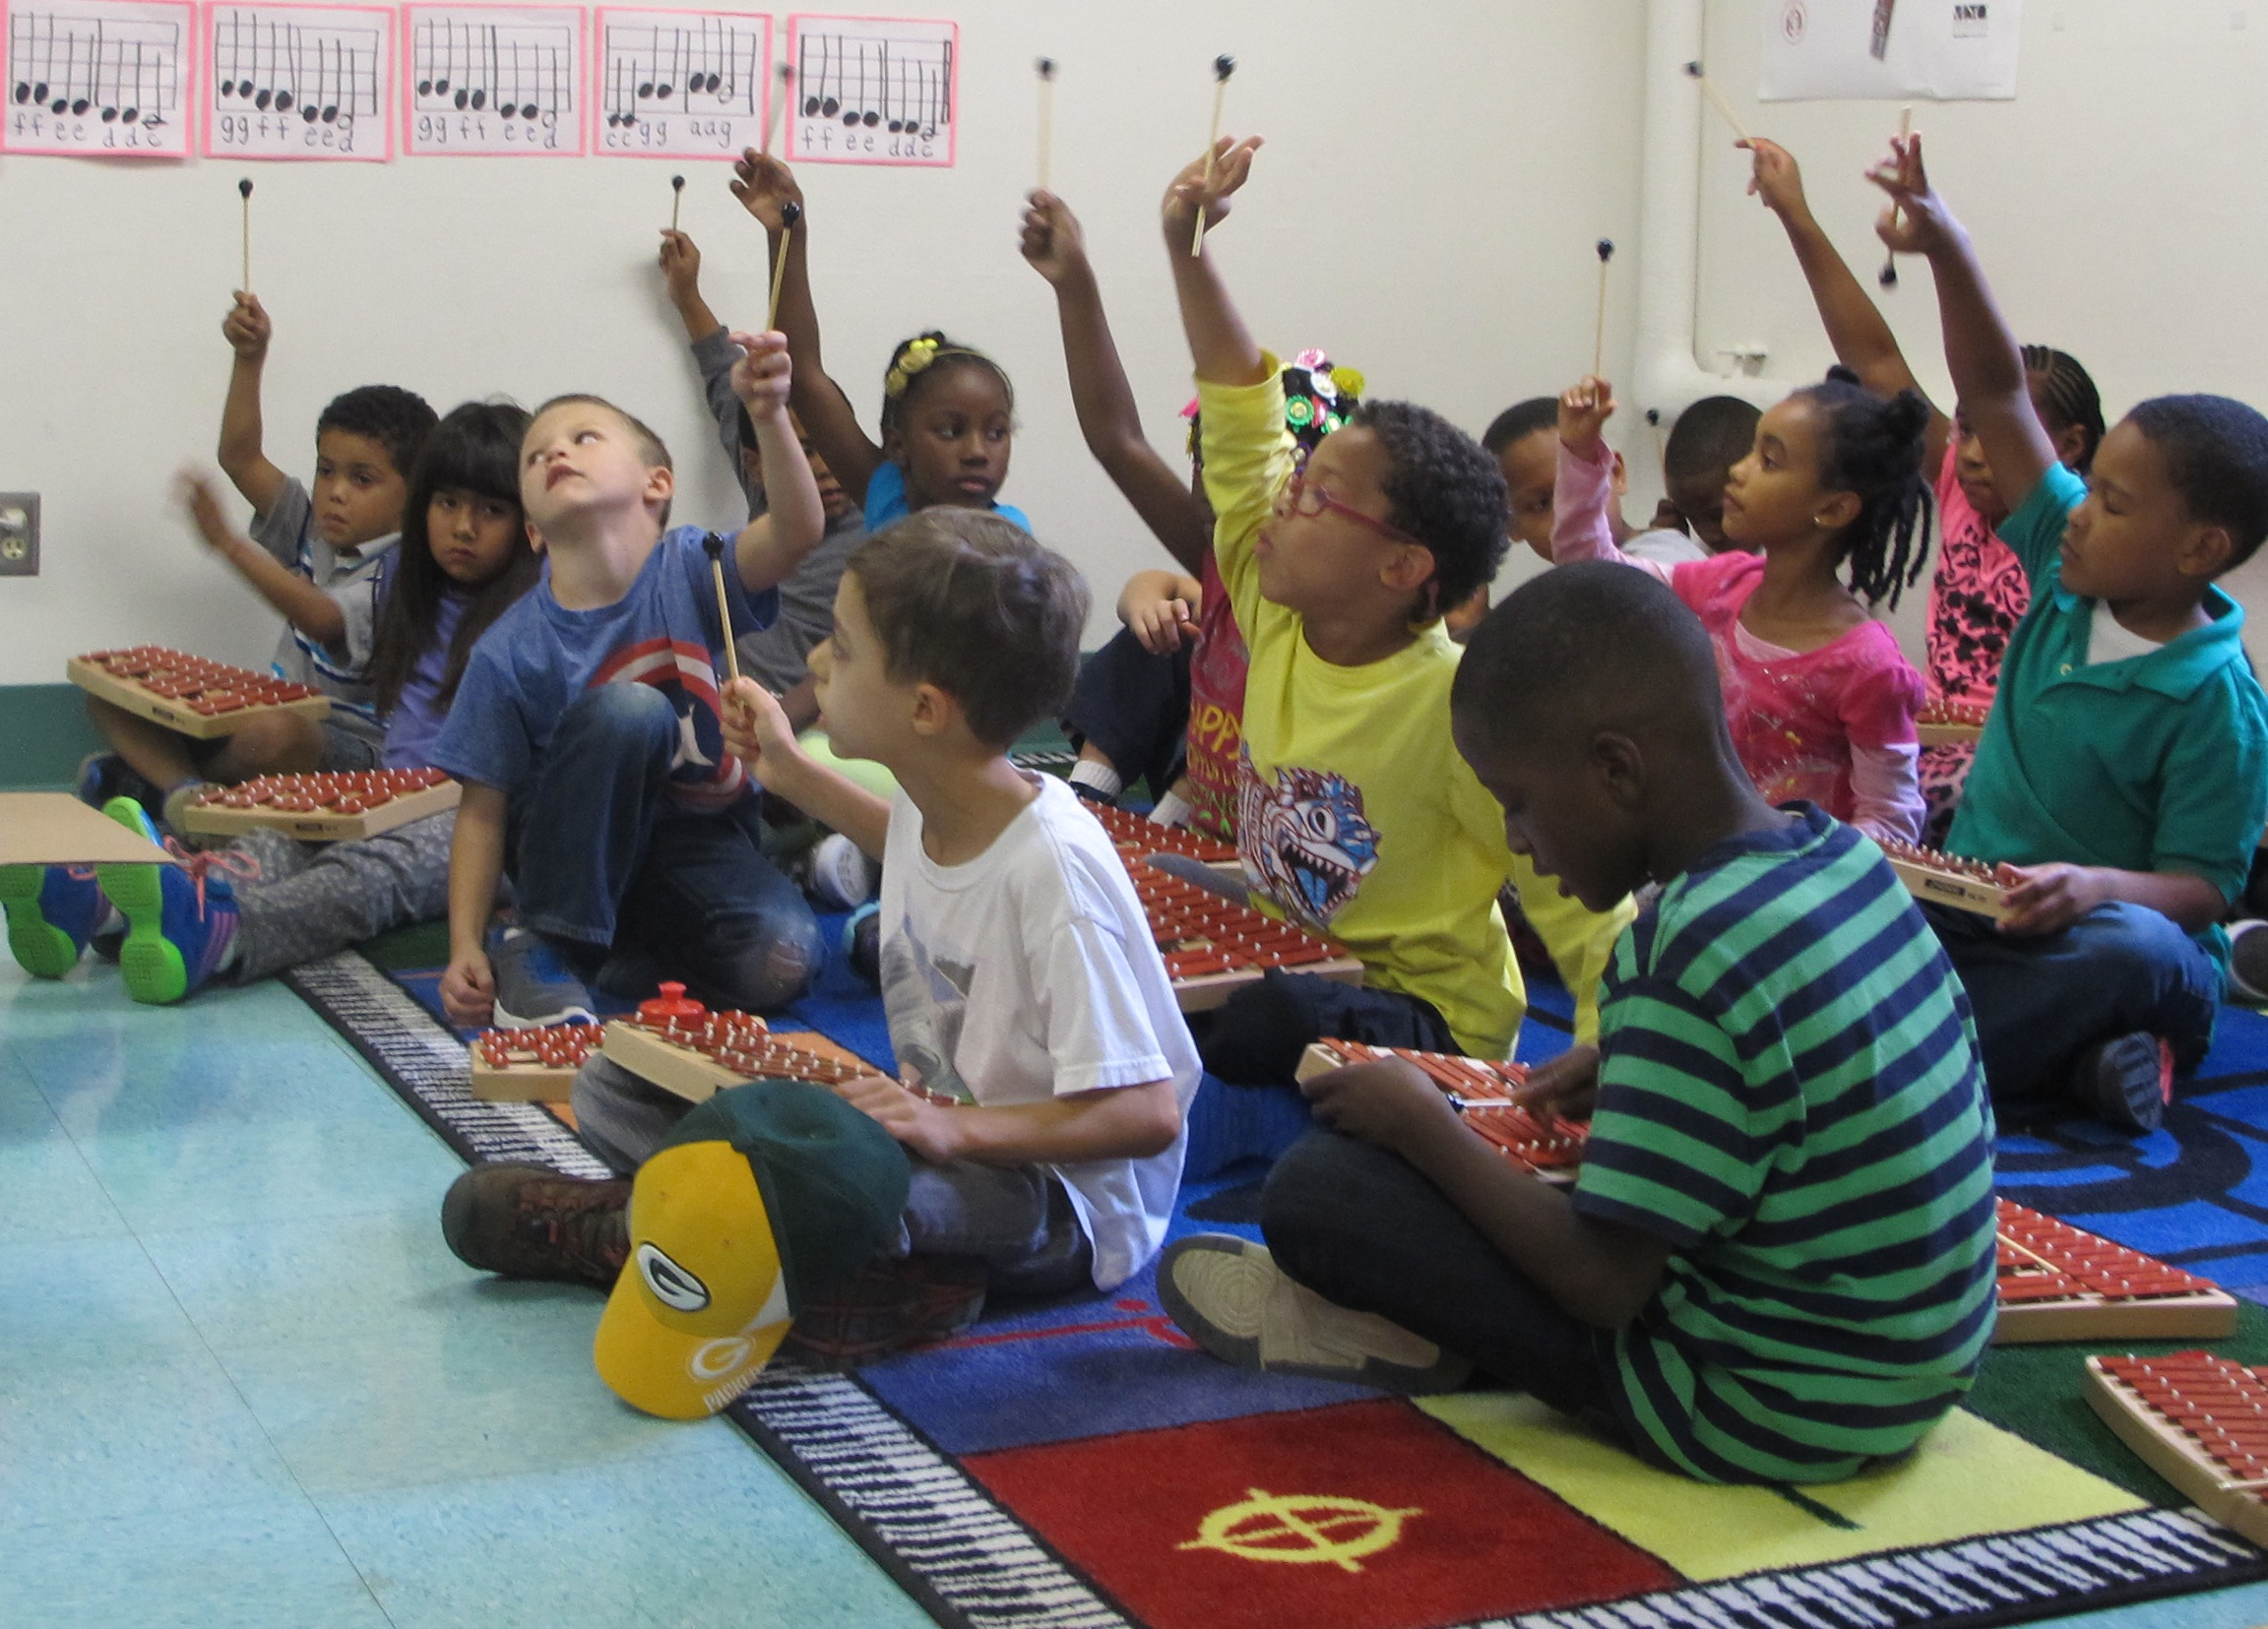 Woodlands' students learn tone and rhythm while playing xylophones in music class, one of the specialty classes incorporated into the curriculum. (Photo by Molly Rippinger)